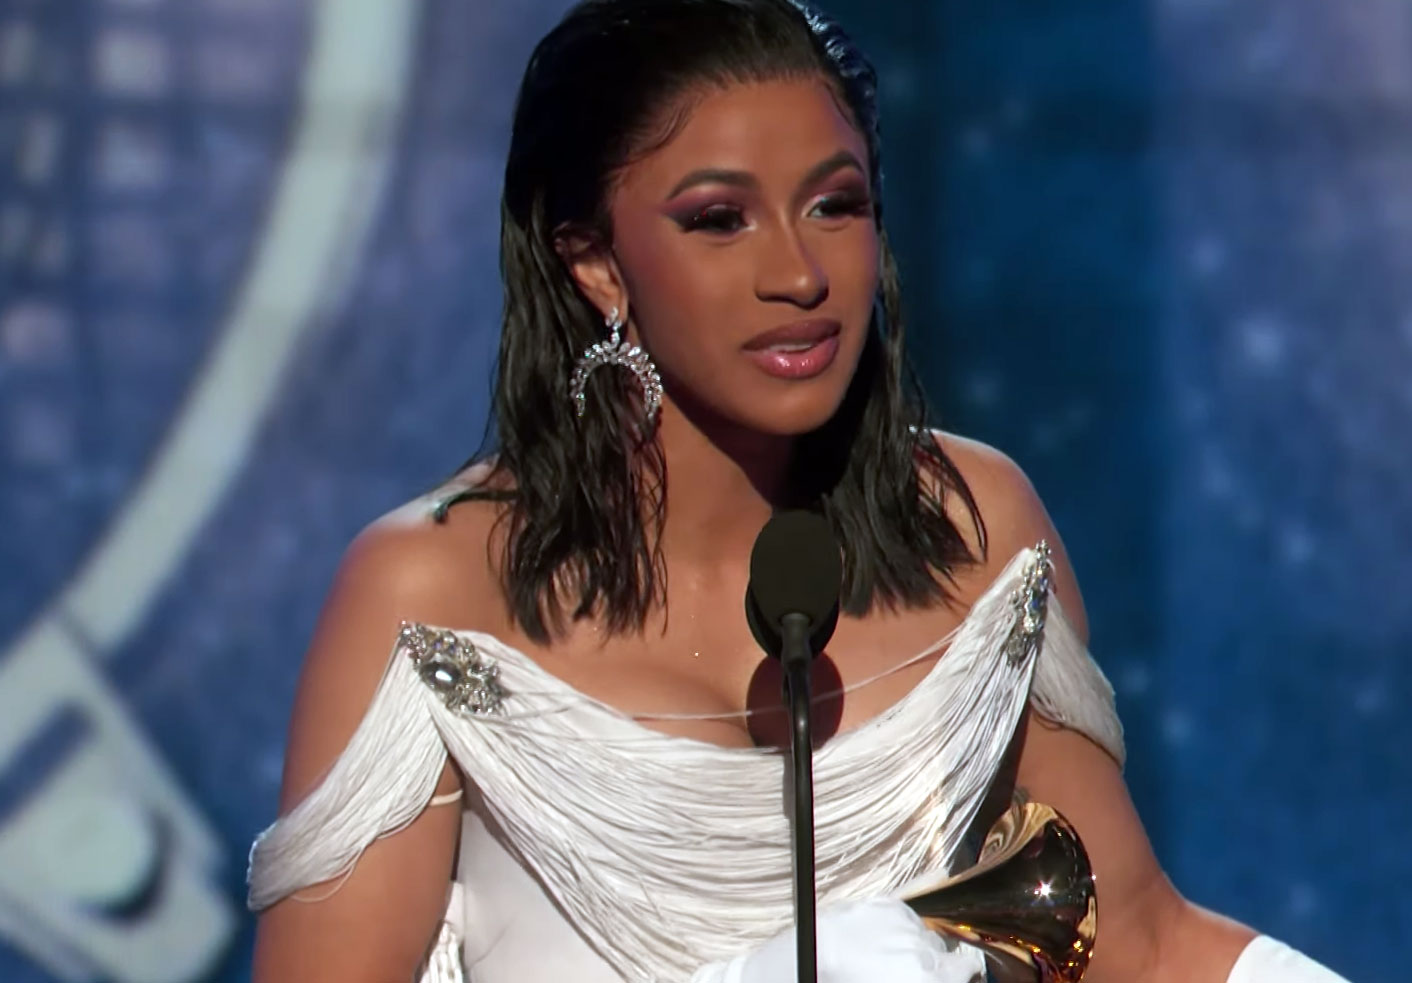 Cardi B accepts her award at the 2019 Grammys